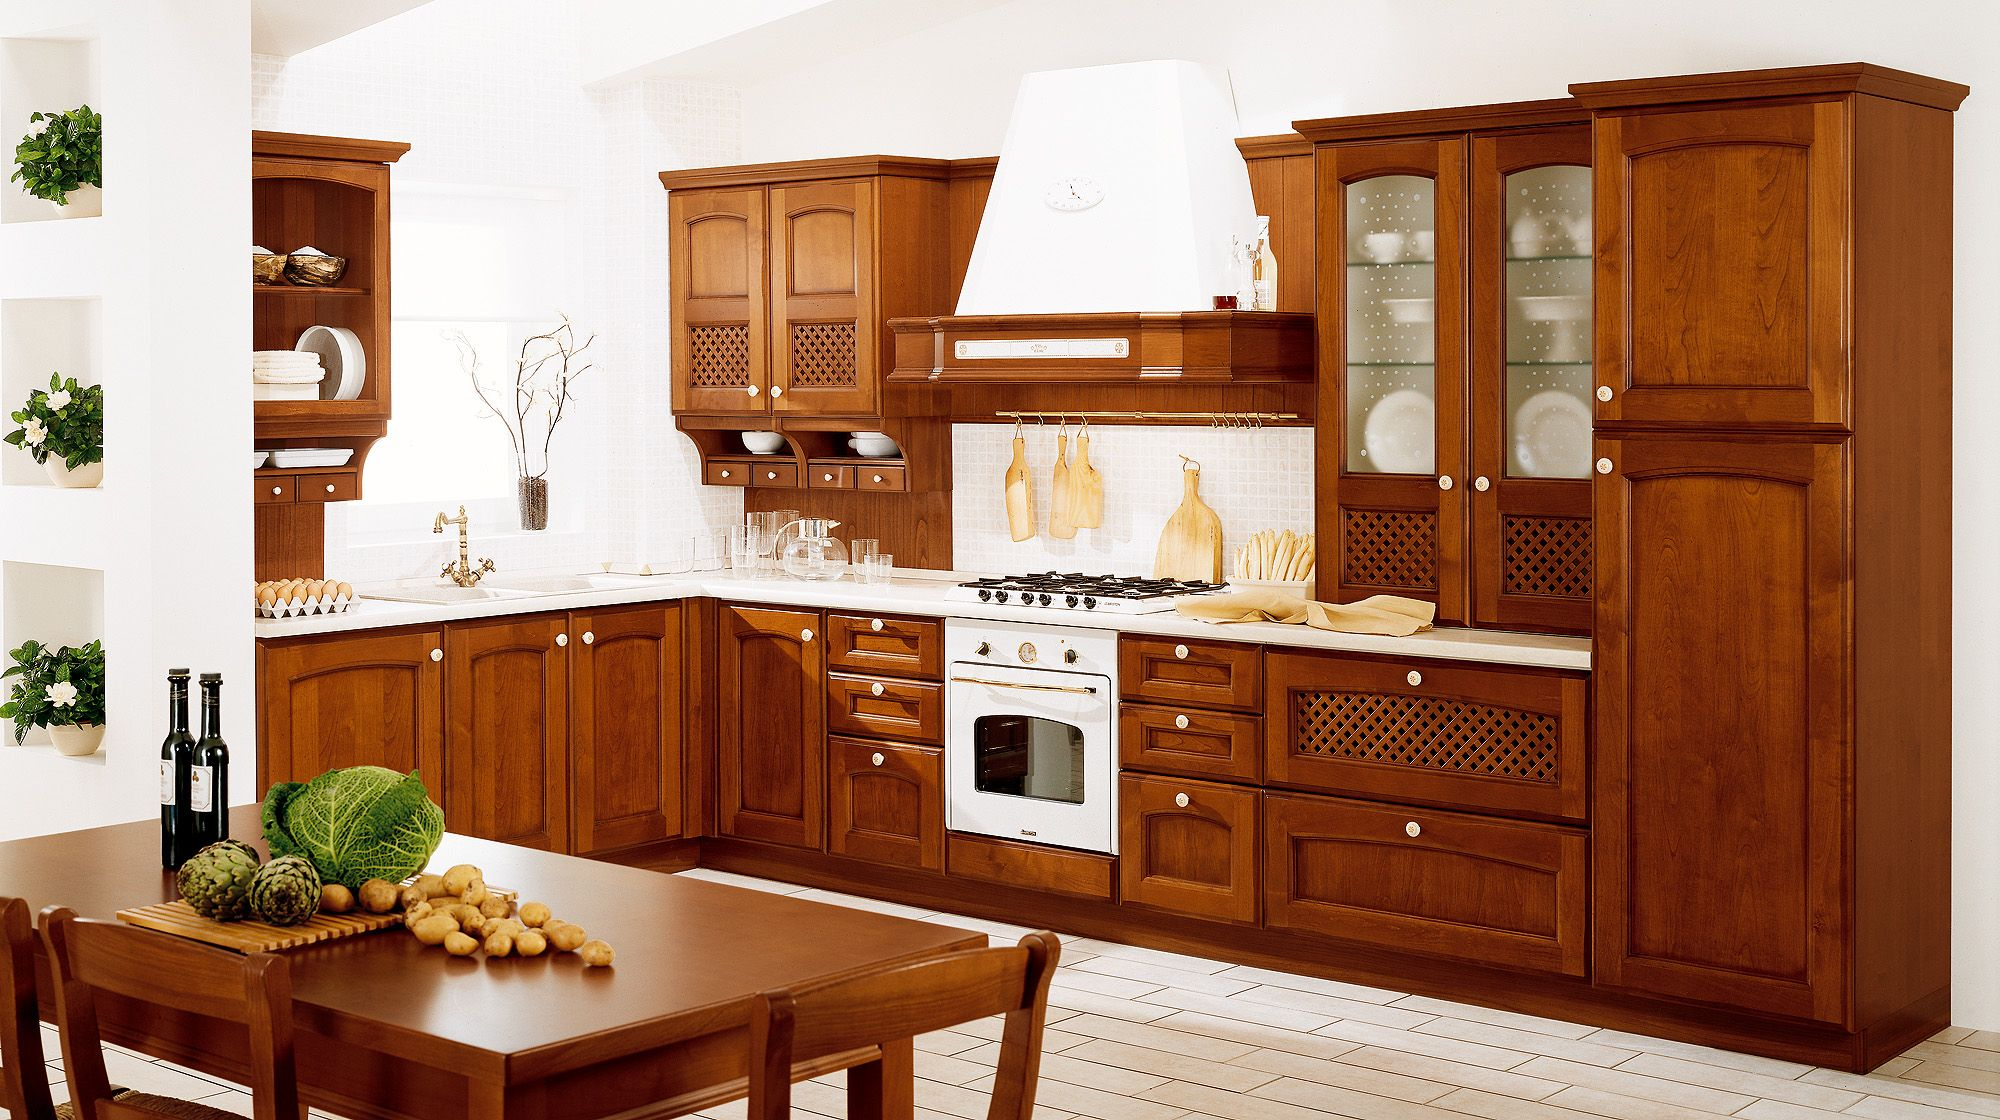 VILLA D\'ESTE | Country kitchen designs, Kitchen design ...